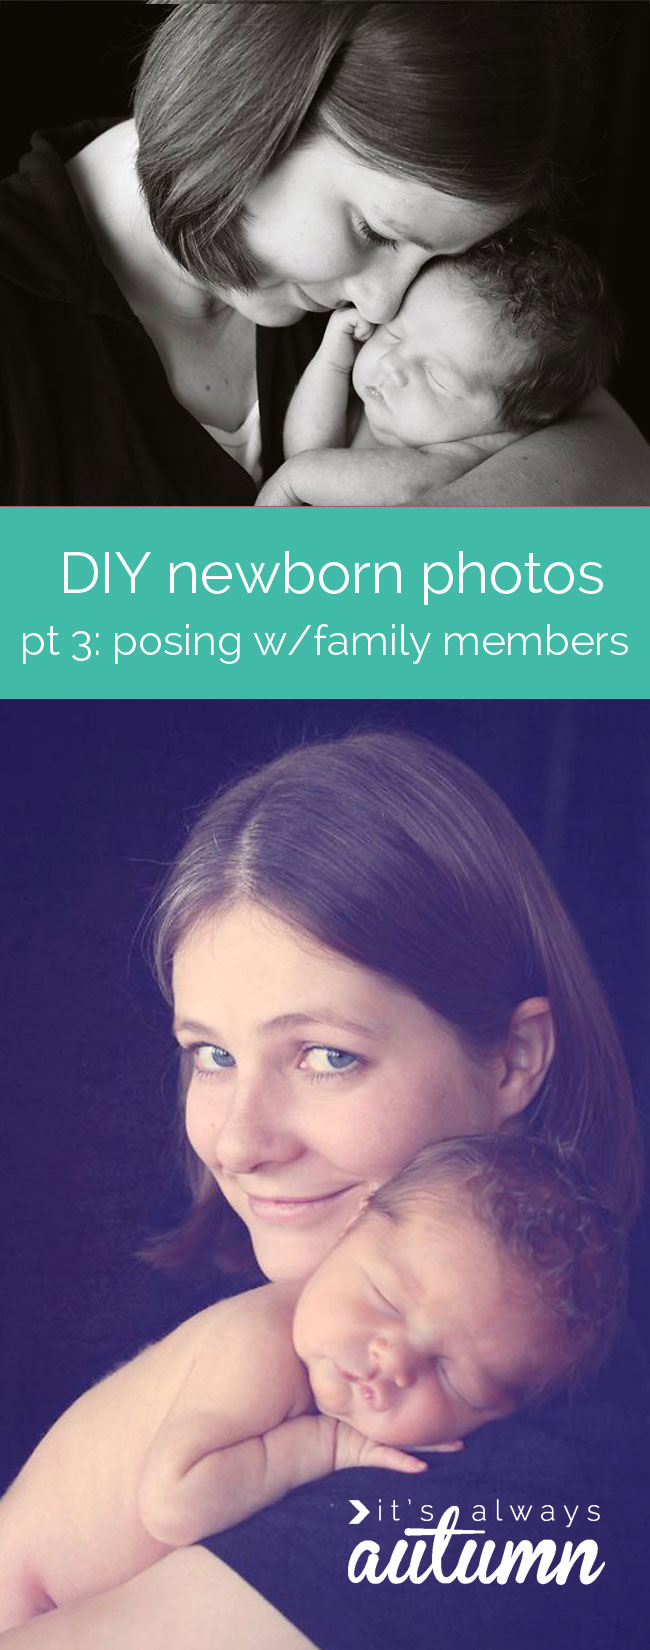 save money by learning to take your own newborn photos | baby photography